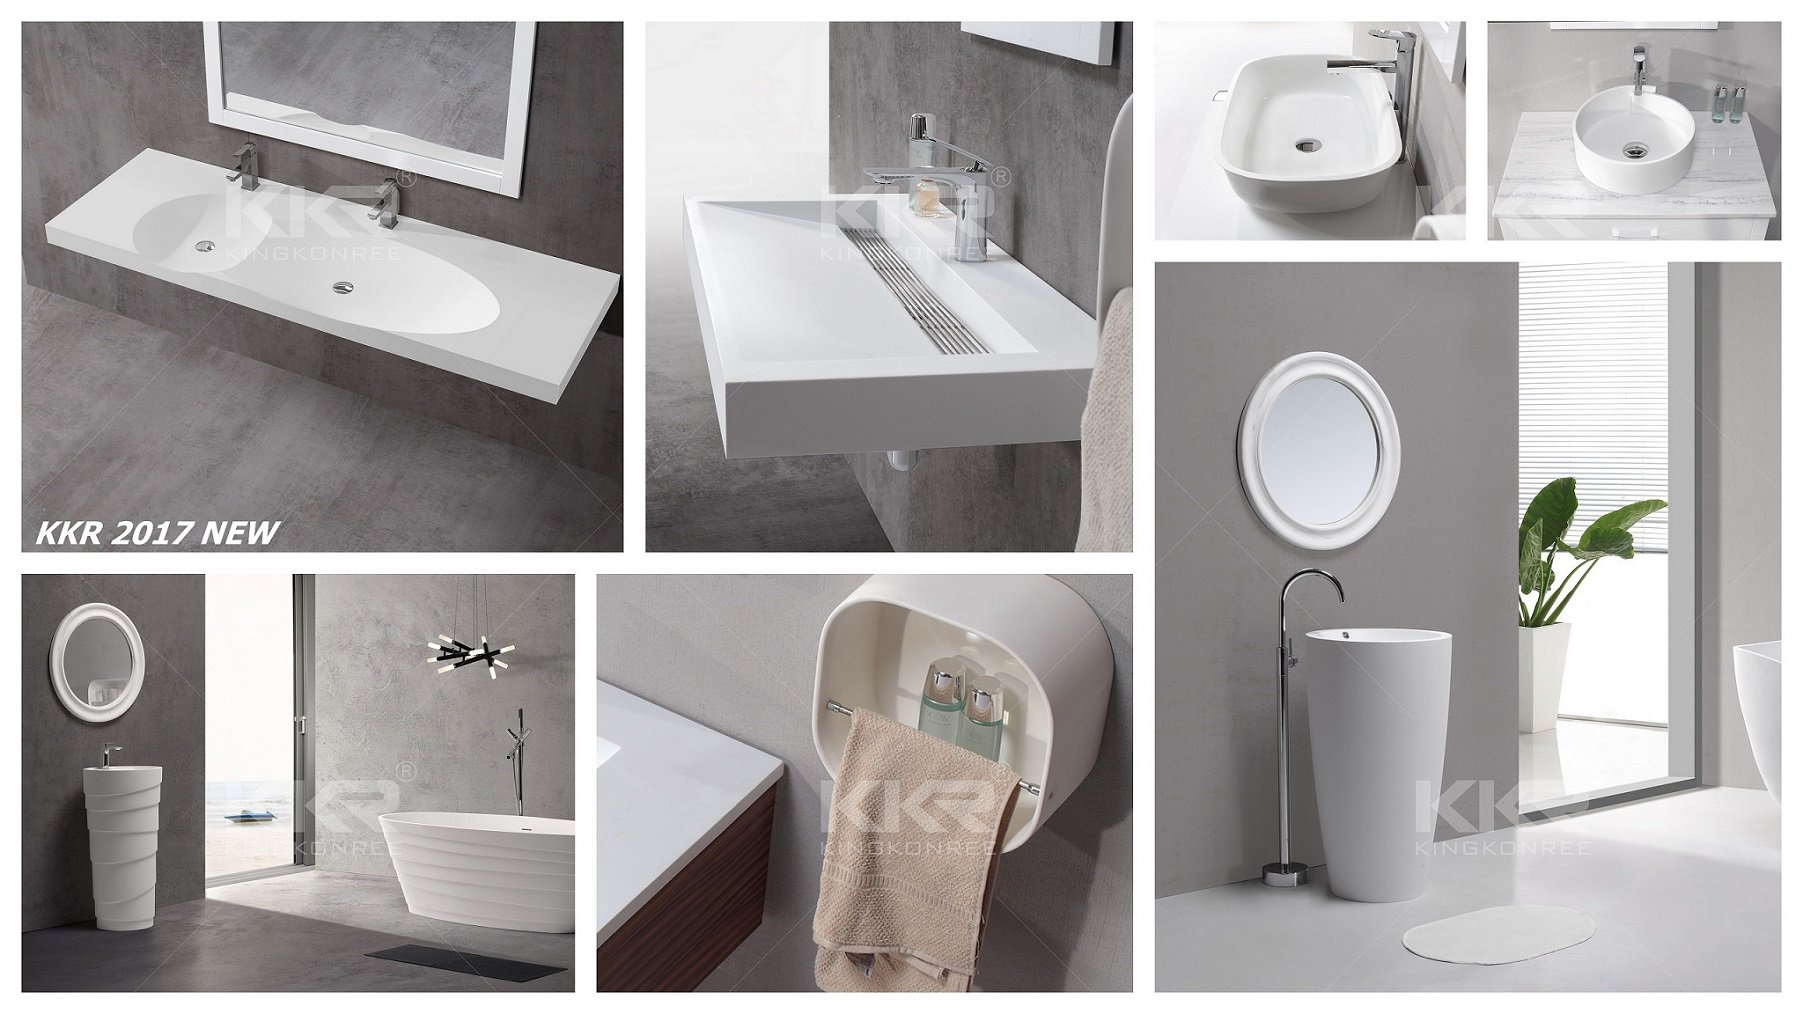 Comparison of solid surface bathroom sinks & ceramic bathroom basins